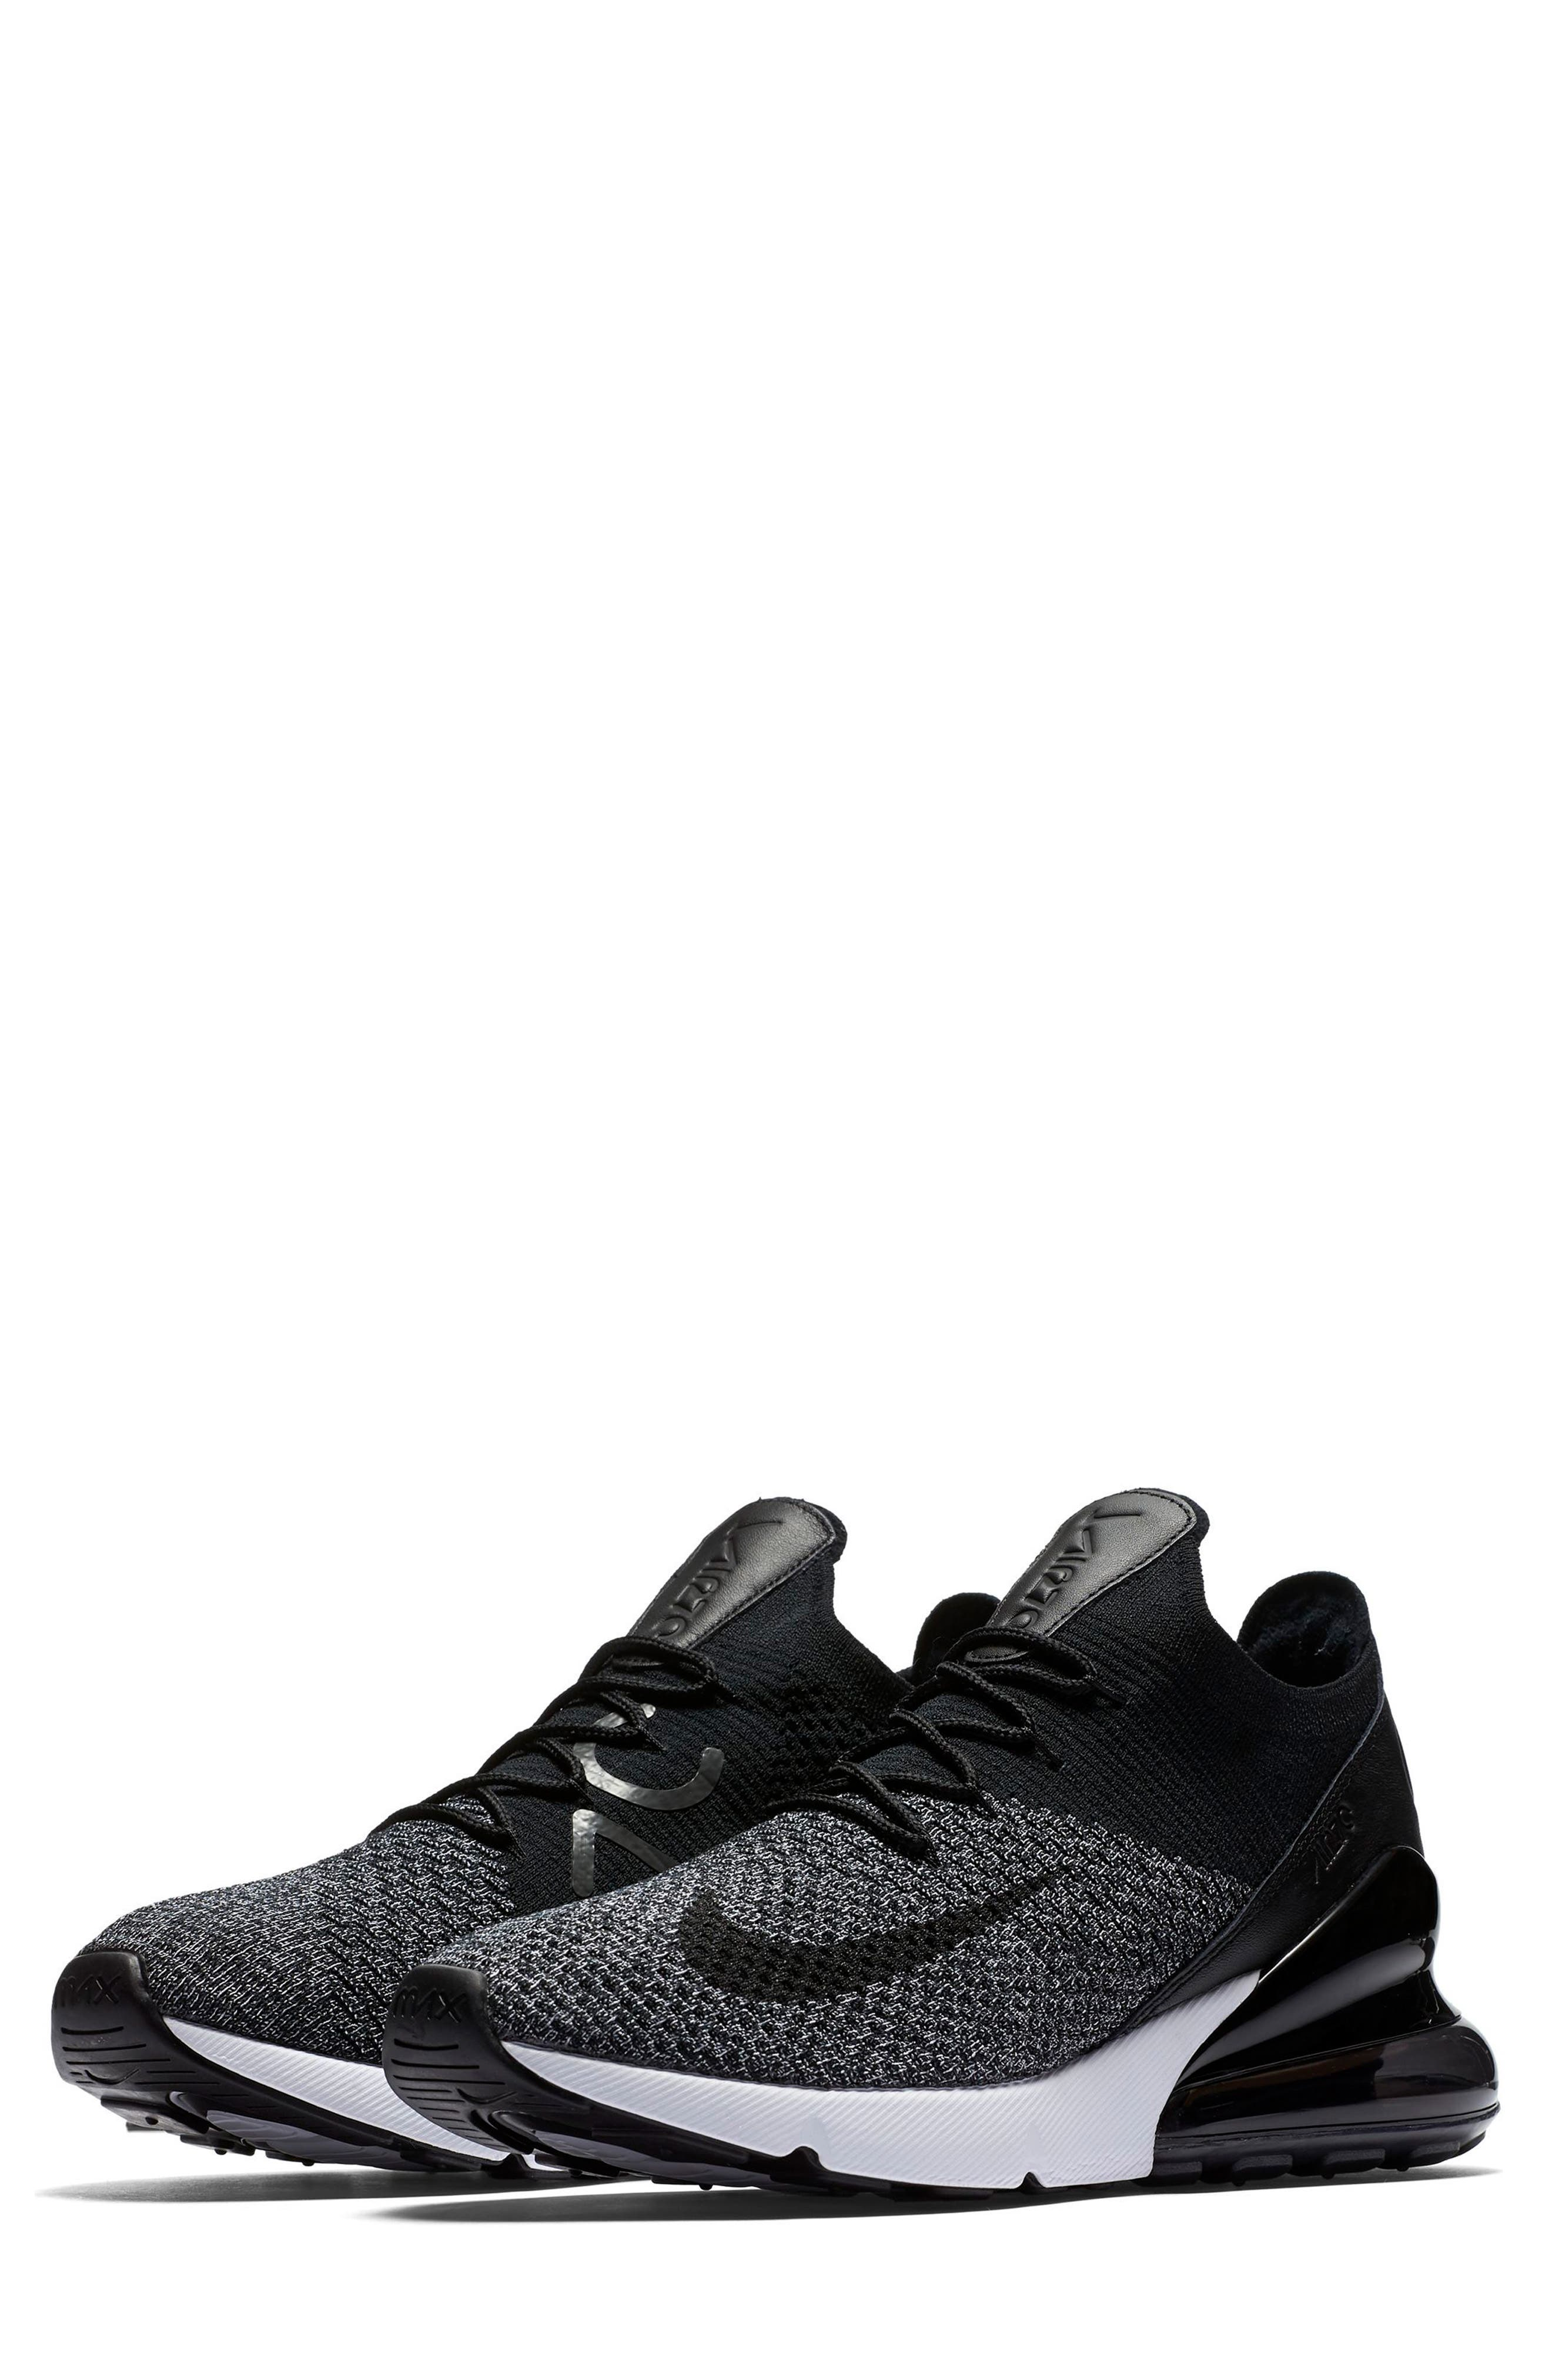 Nike Air Max 270 Flyknit Sneaker (Men)